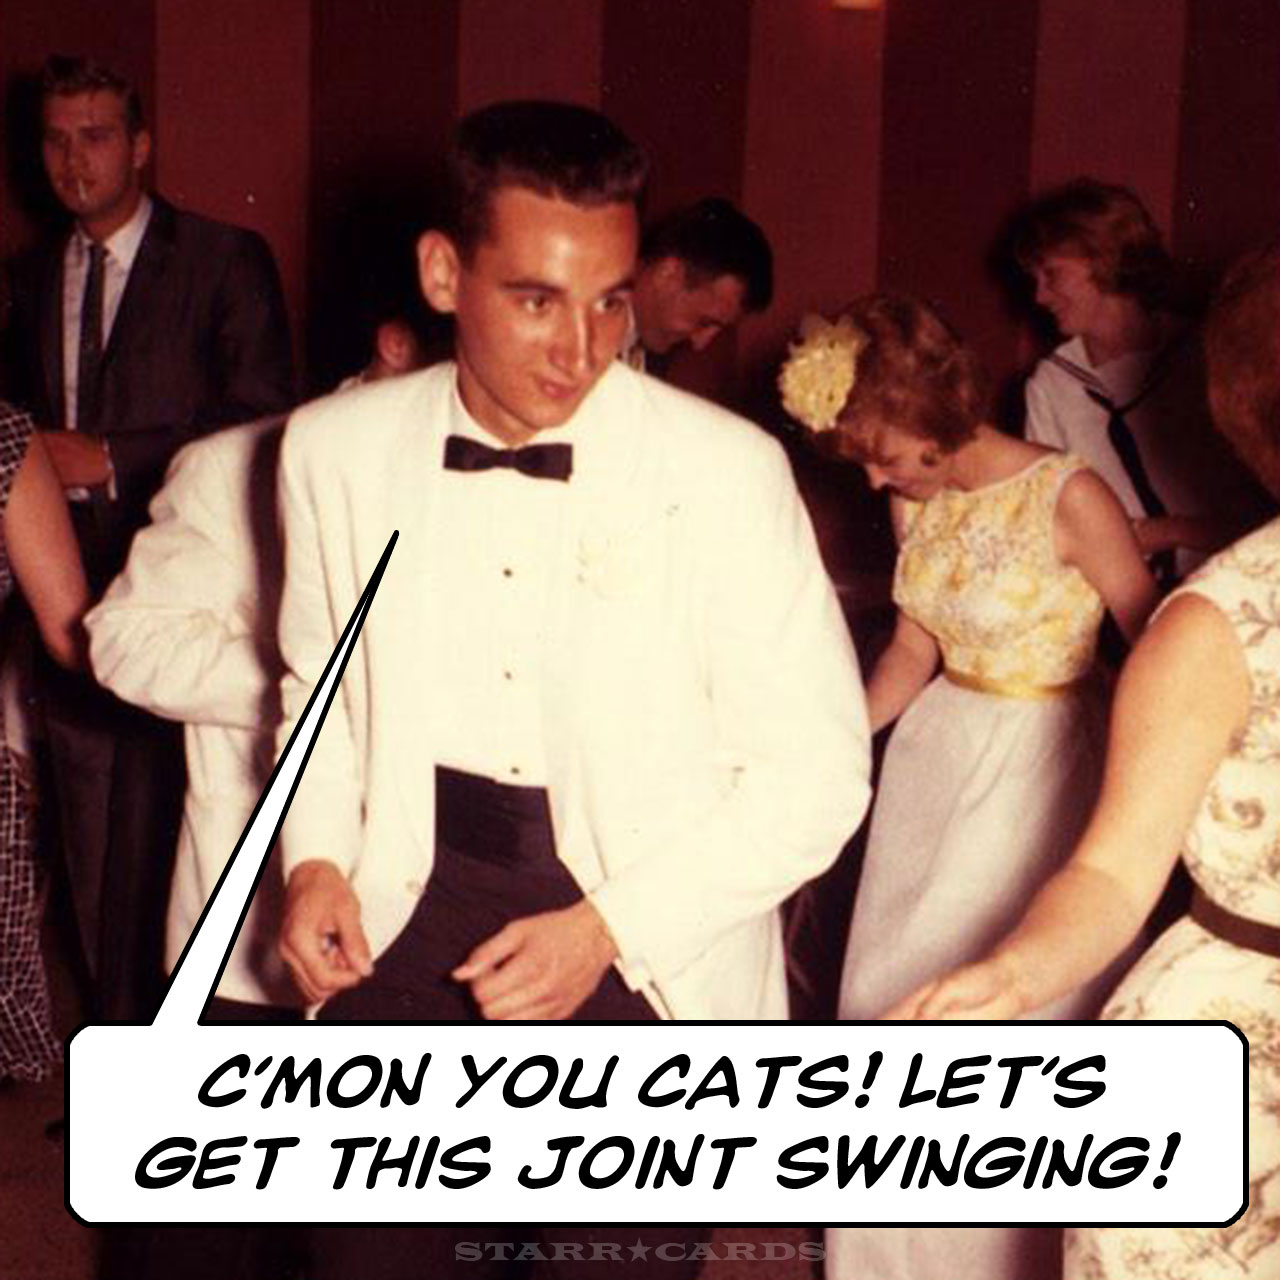 Blue Devils legend Coach K dancing the night away in his college years